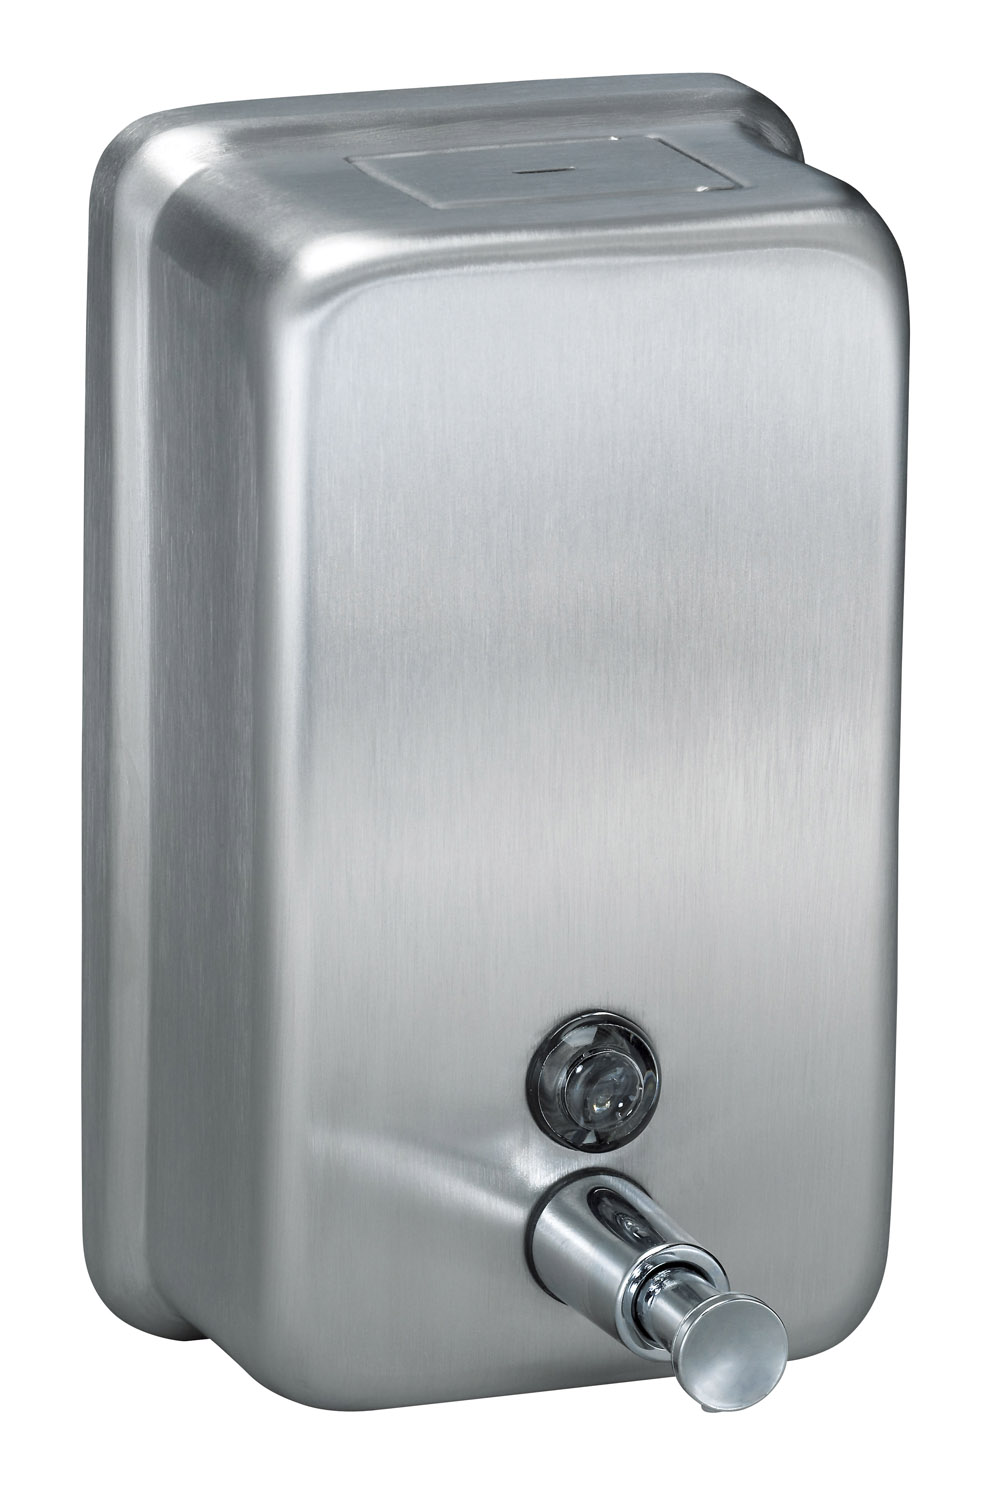 Bradley 6562 Vertical Soap Dispenser